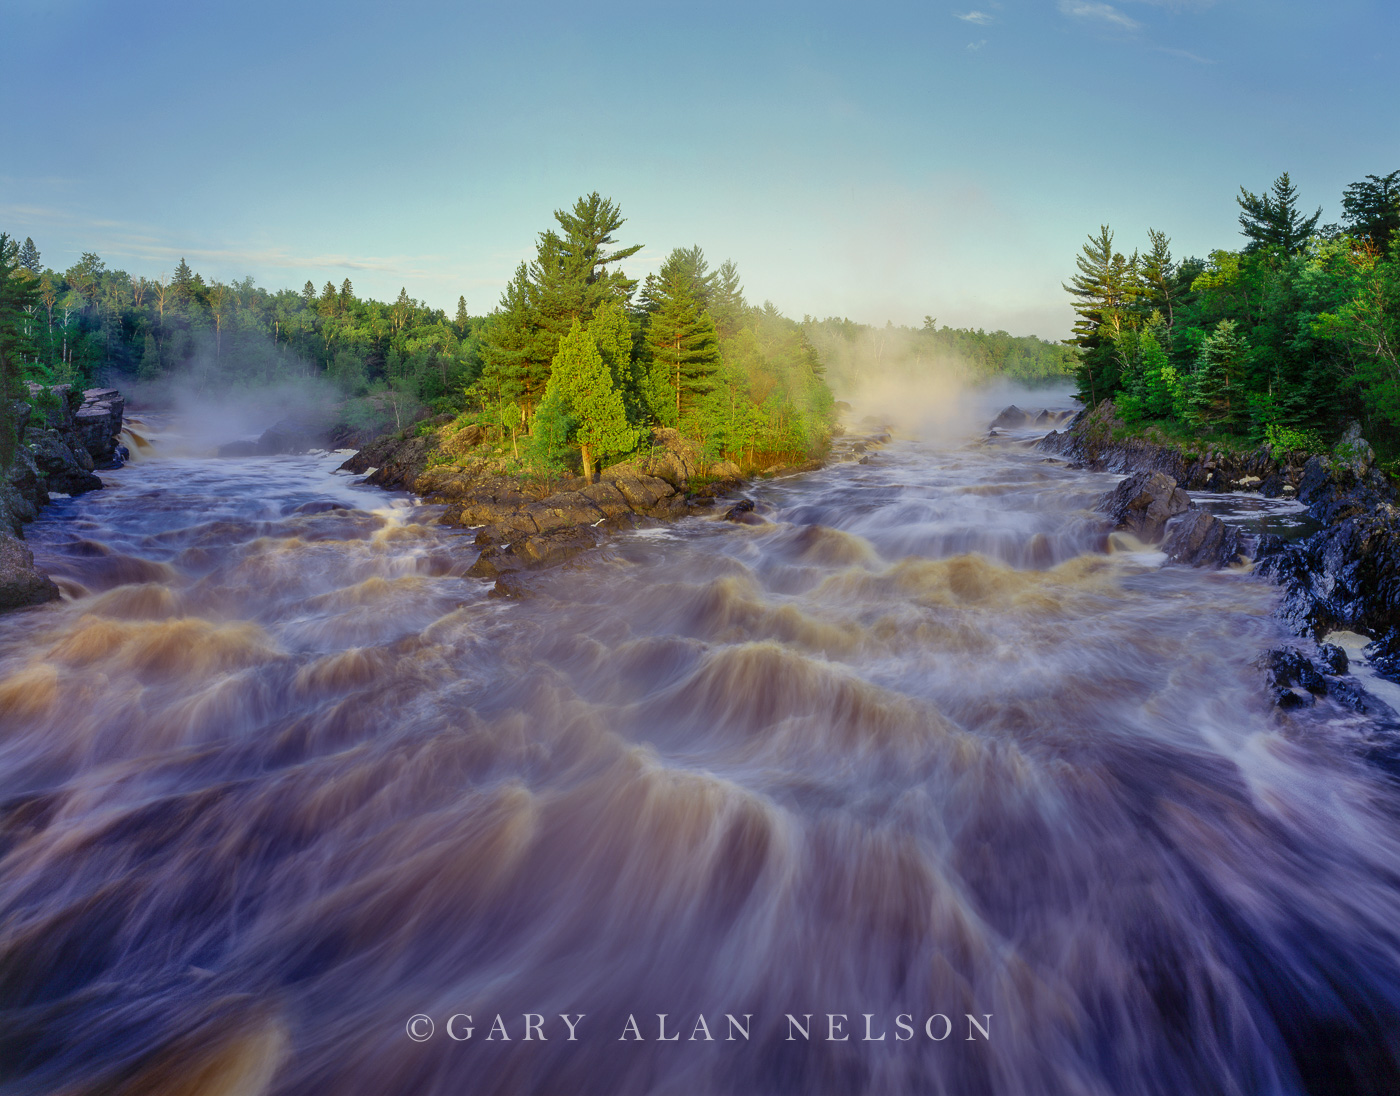 St. louis river, jay cooke state park, minnesota, photo